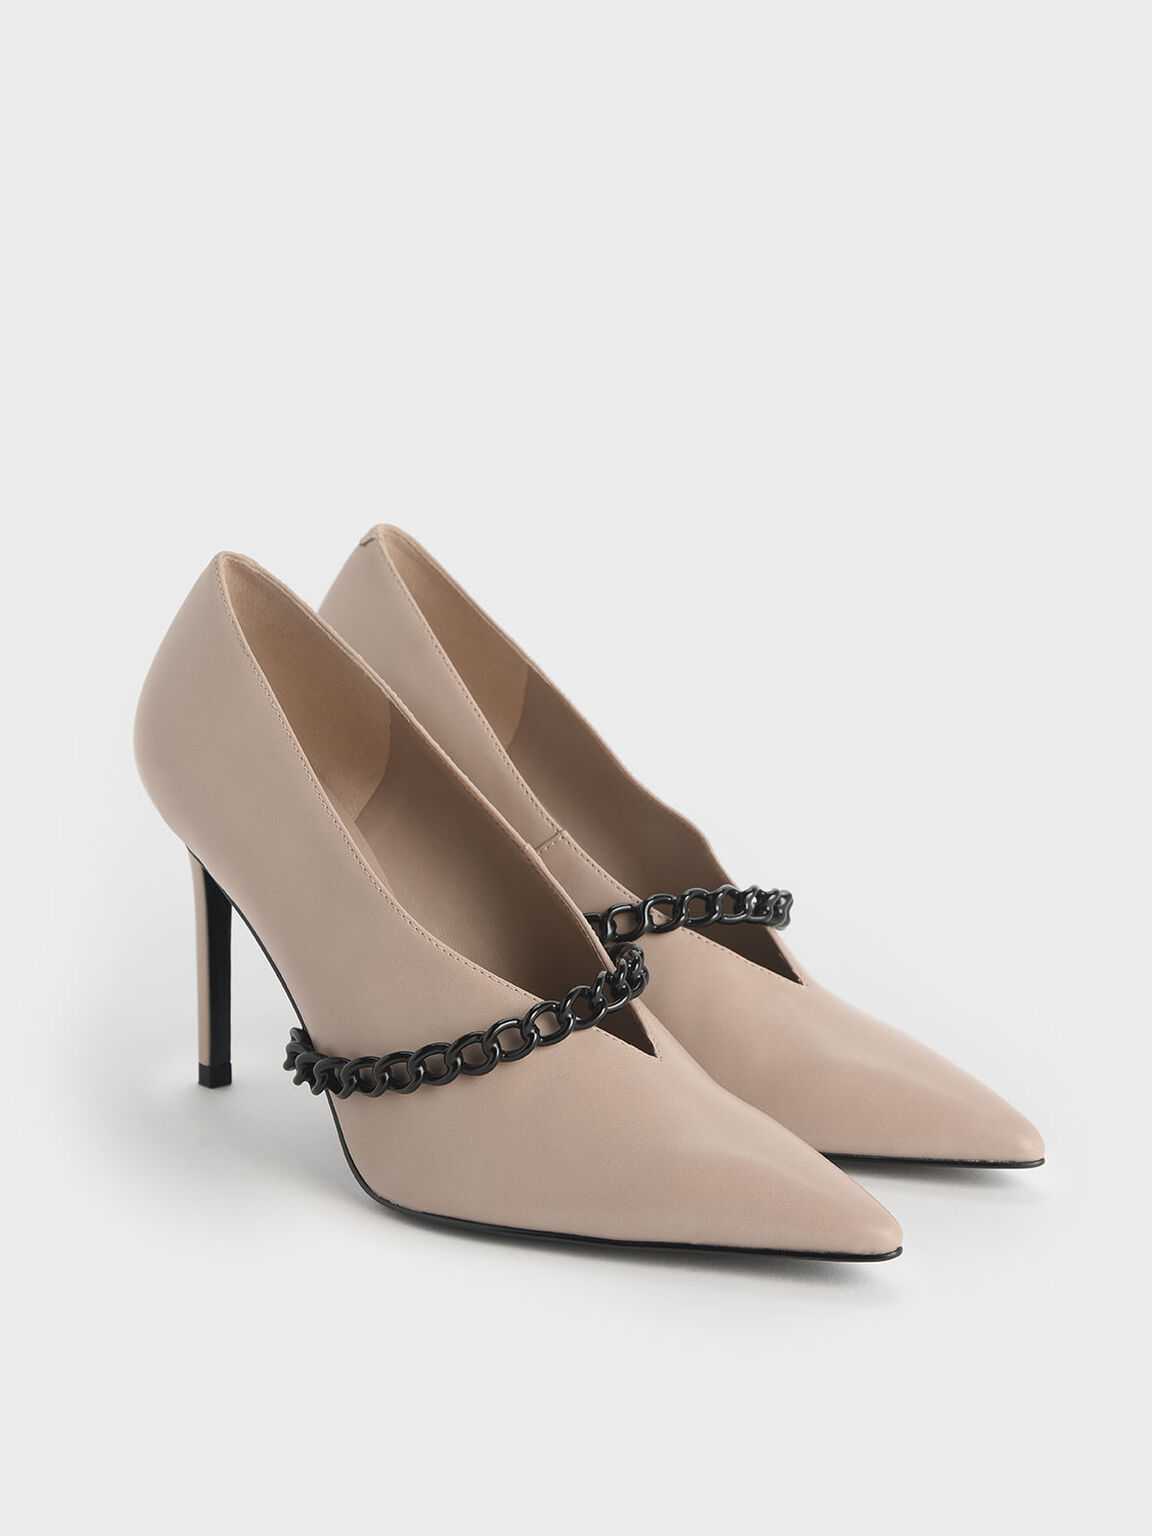 Chain Strap Pumps, Nude, hi-res